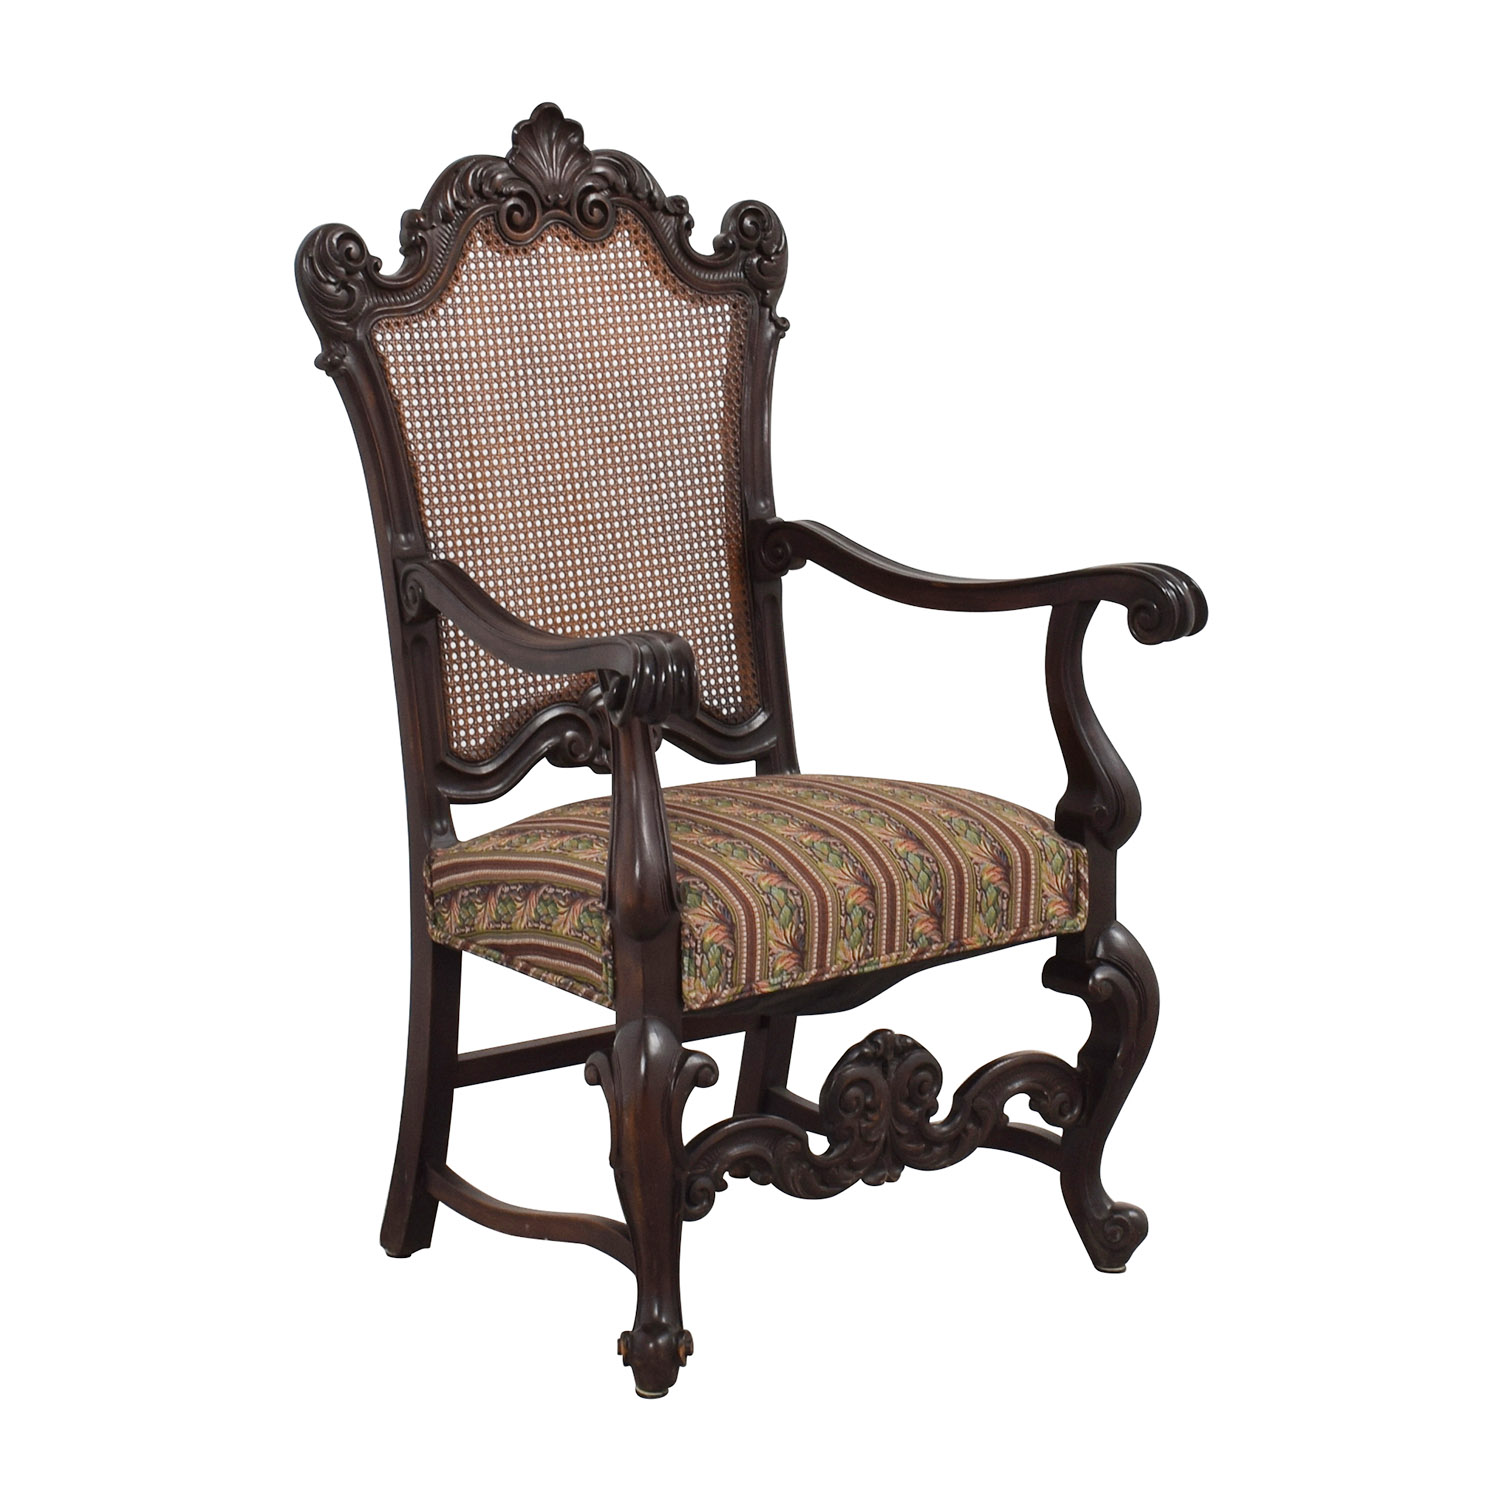 Accent Chairs Prices 89 Off Antique Accent Chair With Hole Caning Back Chairs